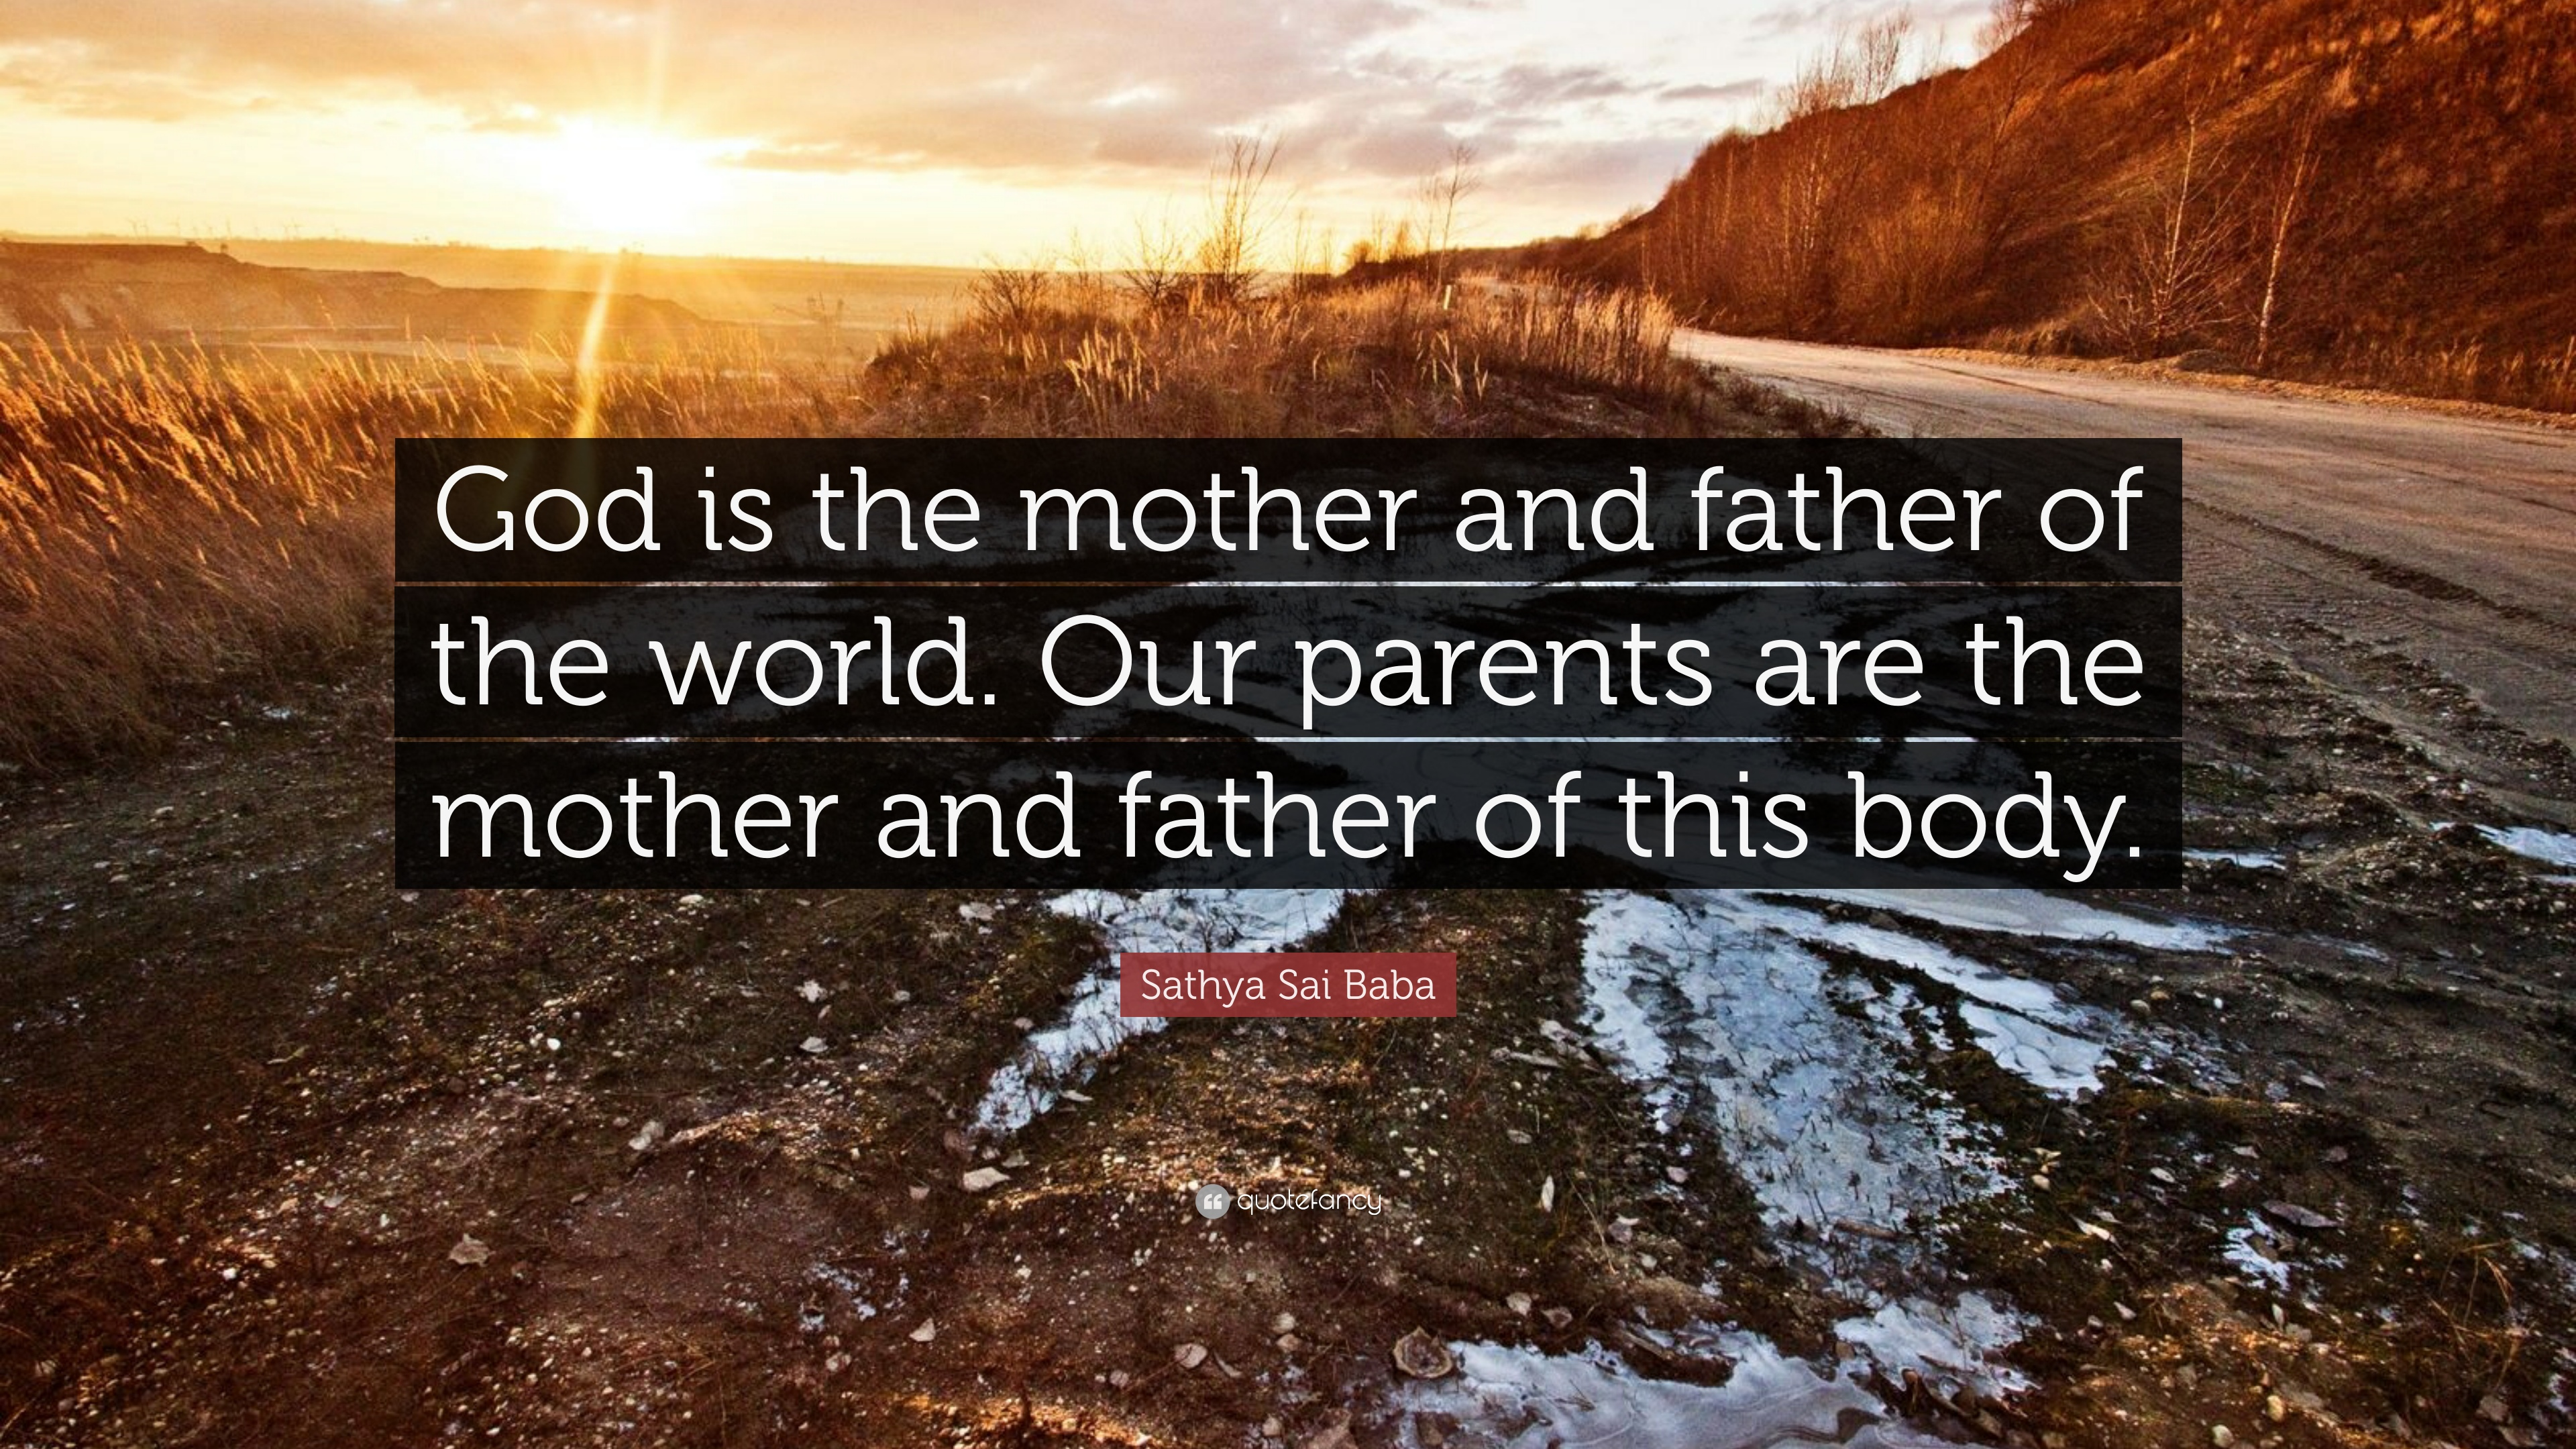 Sathya Sai Baba Quote God Is The Mother And Father Of The World